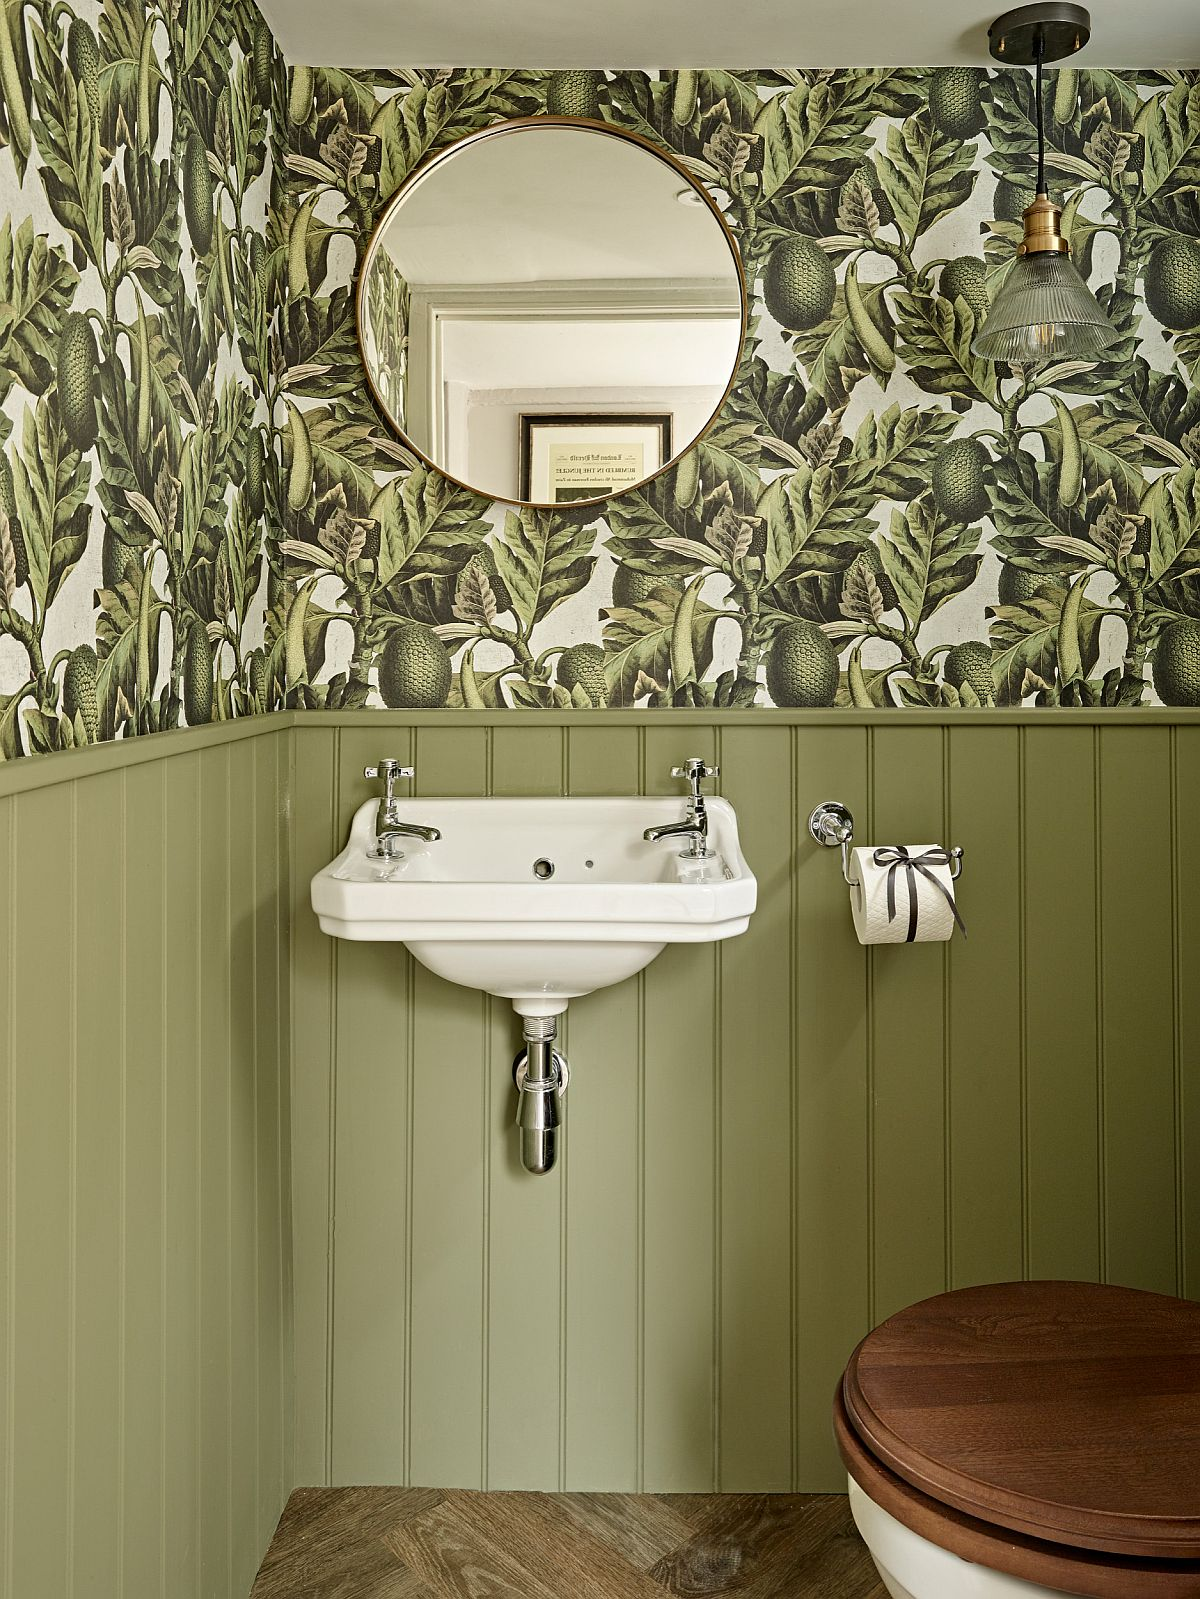 Both wallpaper and light green wall add color and class to the small farmhouse powder room with wall-mounted sink